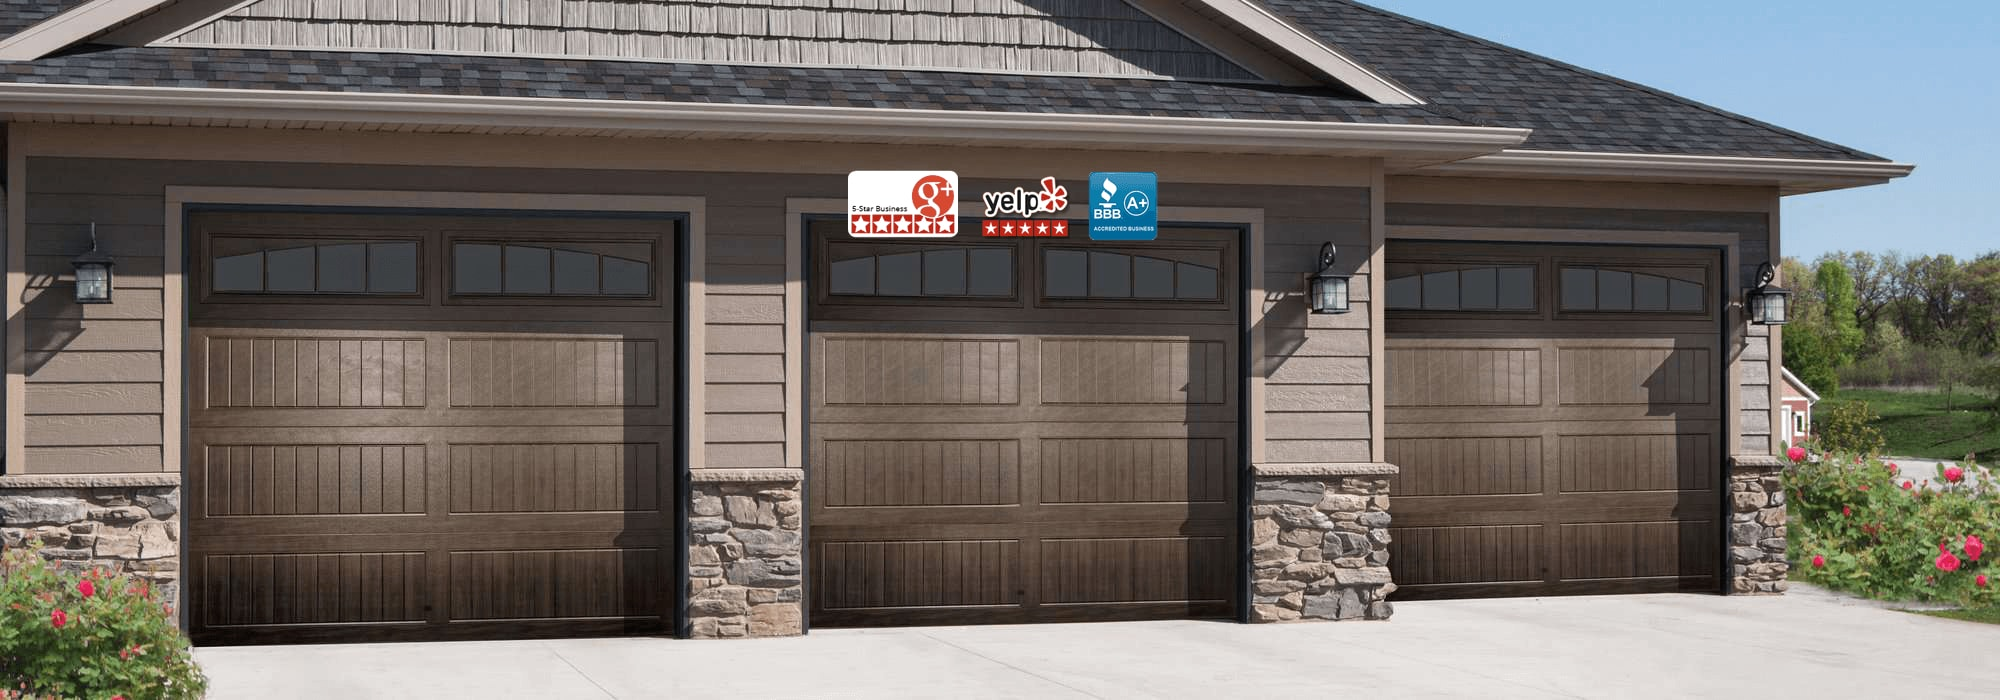 Garage door repair federal way garage door repair for Garage door repair tacoma